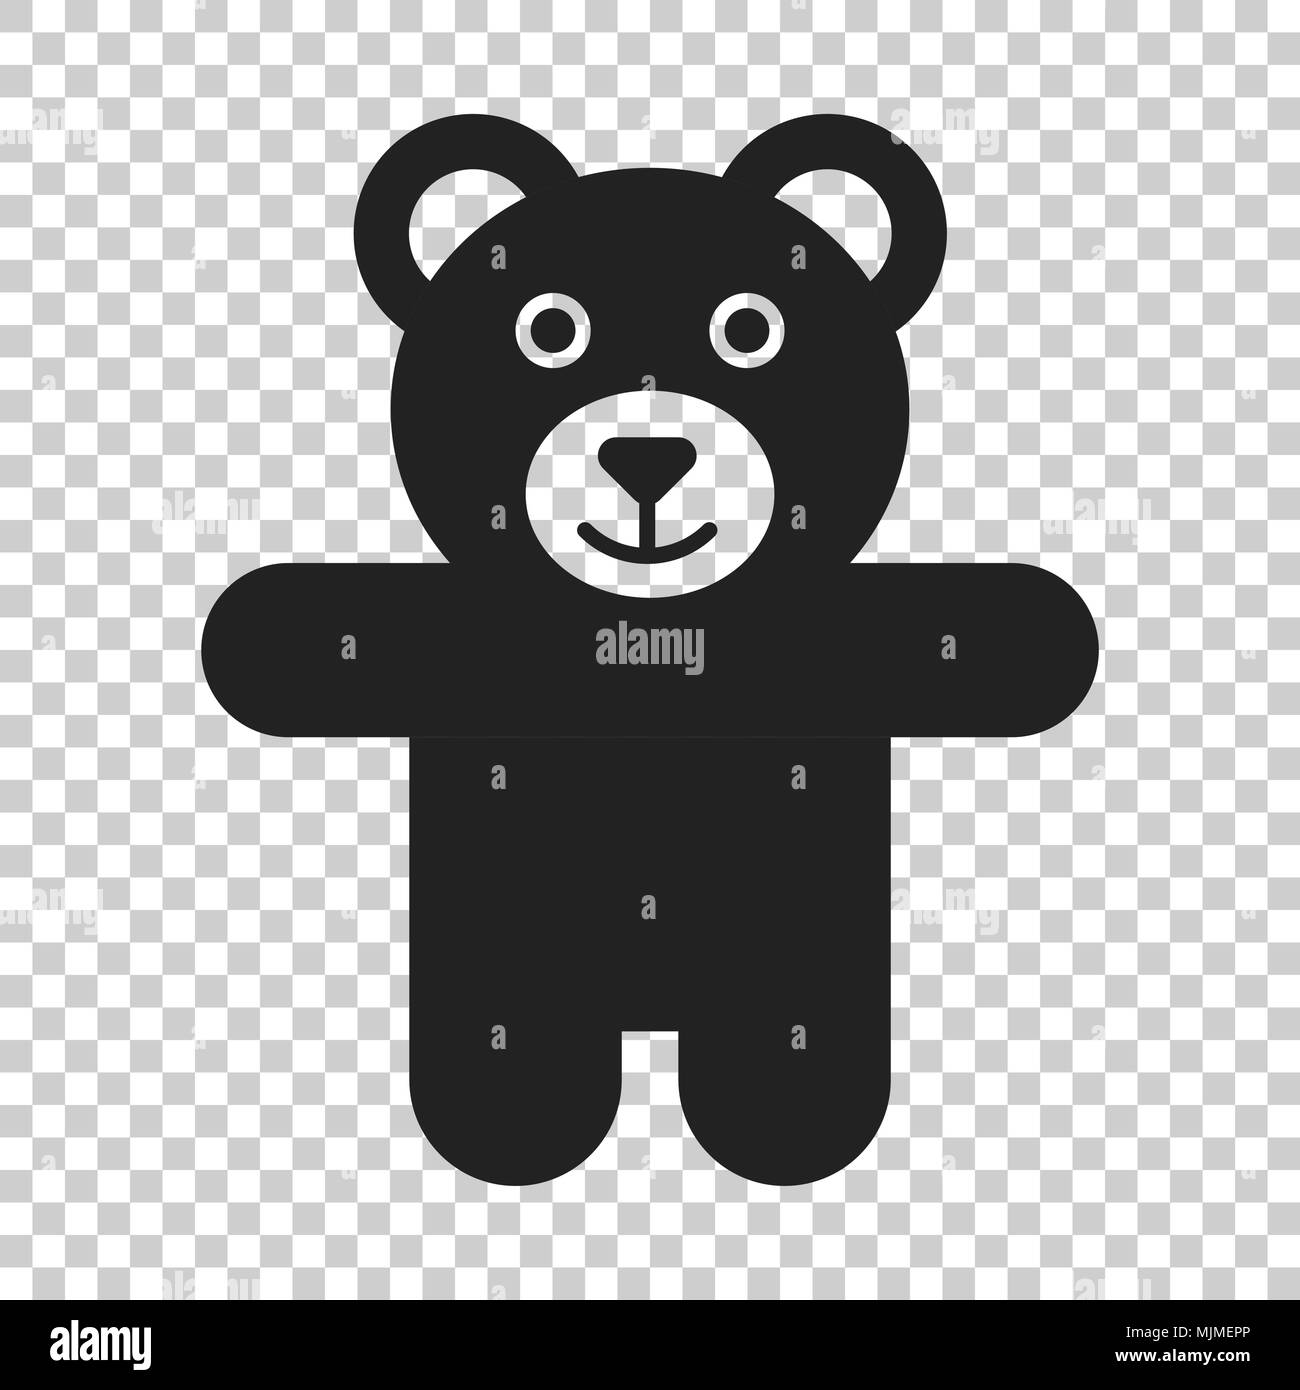 teddy bear plush toy icon vector illustration on isolated transparent background business concept bear pictogram stock vector image art alamy https www alamy com teddy bear plush toy icon vector illustration on isolated transparent background business concept bear pictogram image183618142 html